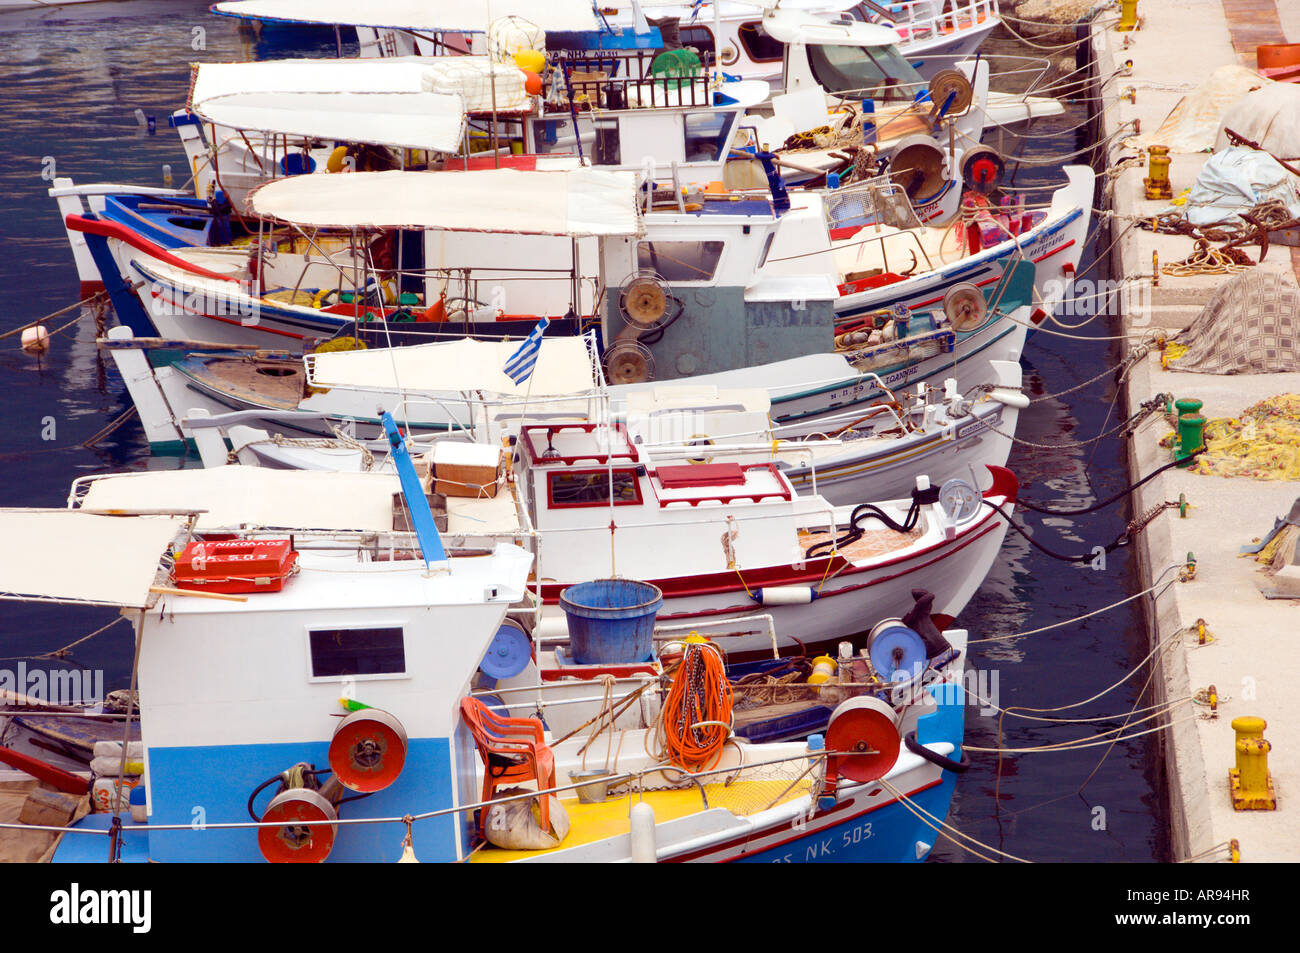 Colorful fishing boats in port at Finikouda Messinia Peloponesse Greece - Stock Image